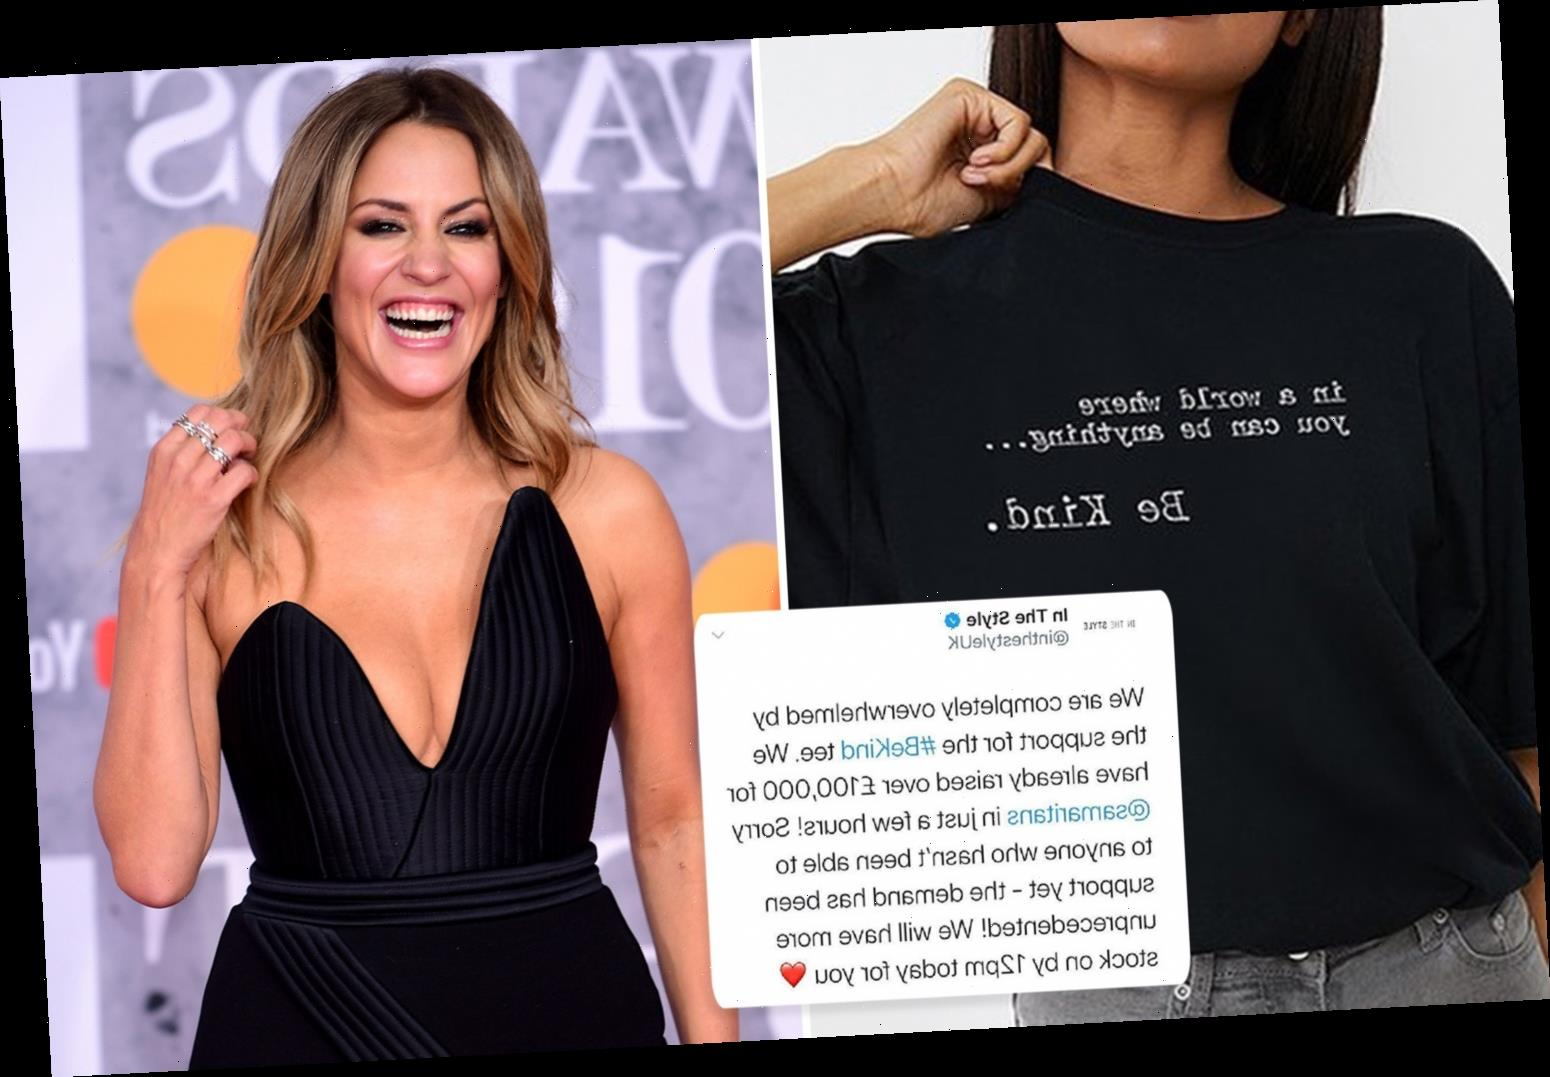 Caroline Flack-inspired T-shirt by In The Style raises £100k for Samaritans in under 24 hours – The Sun